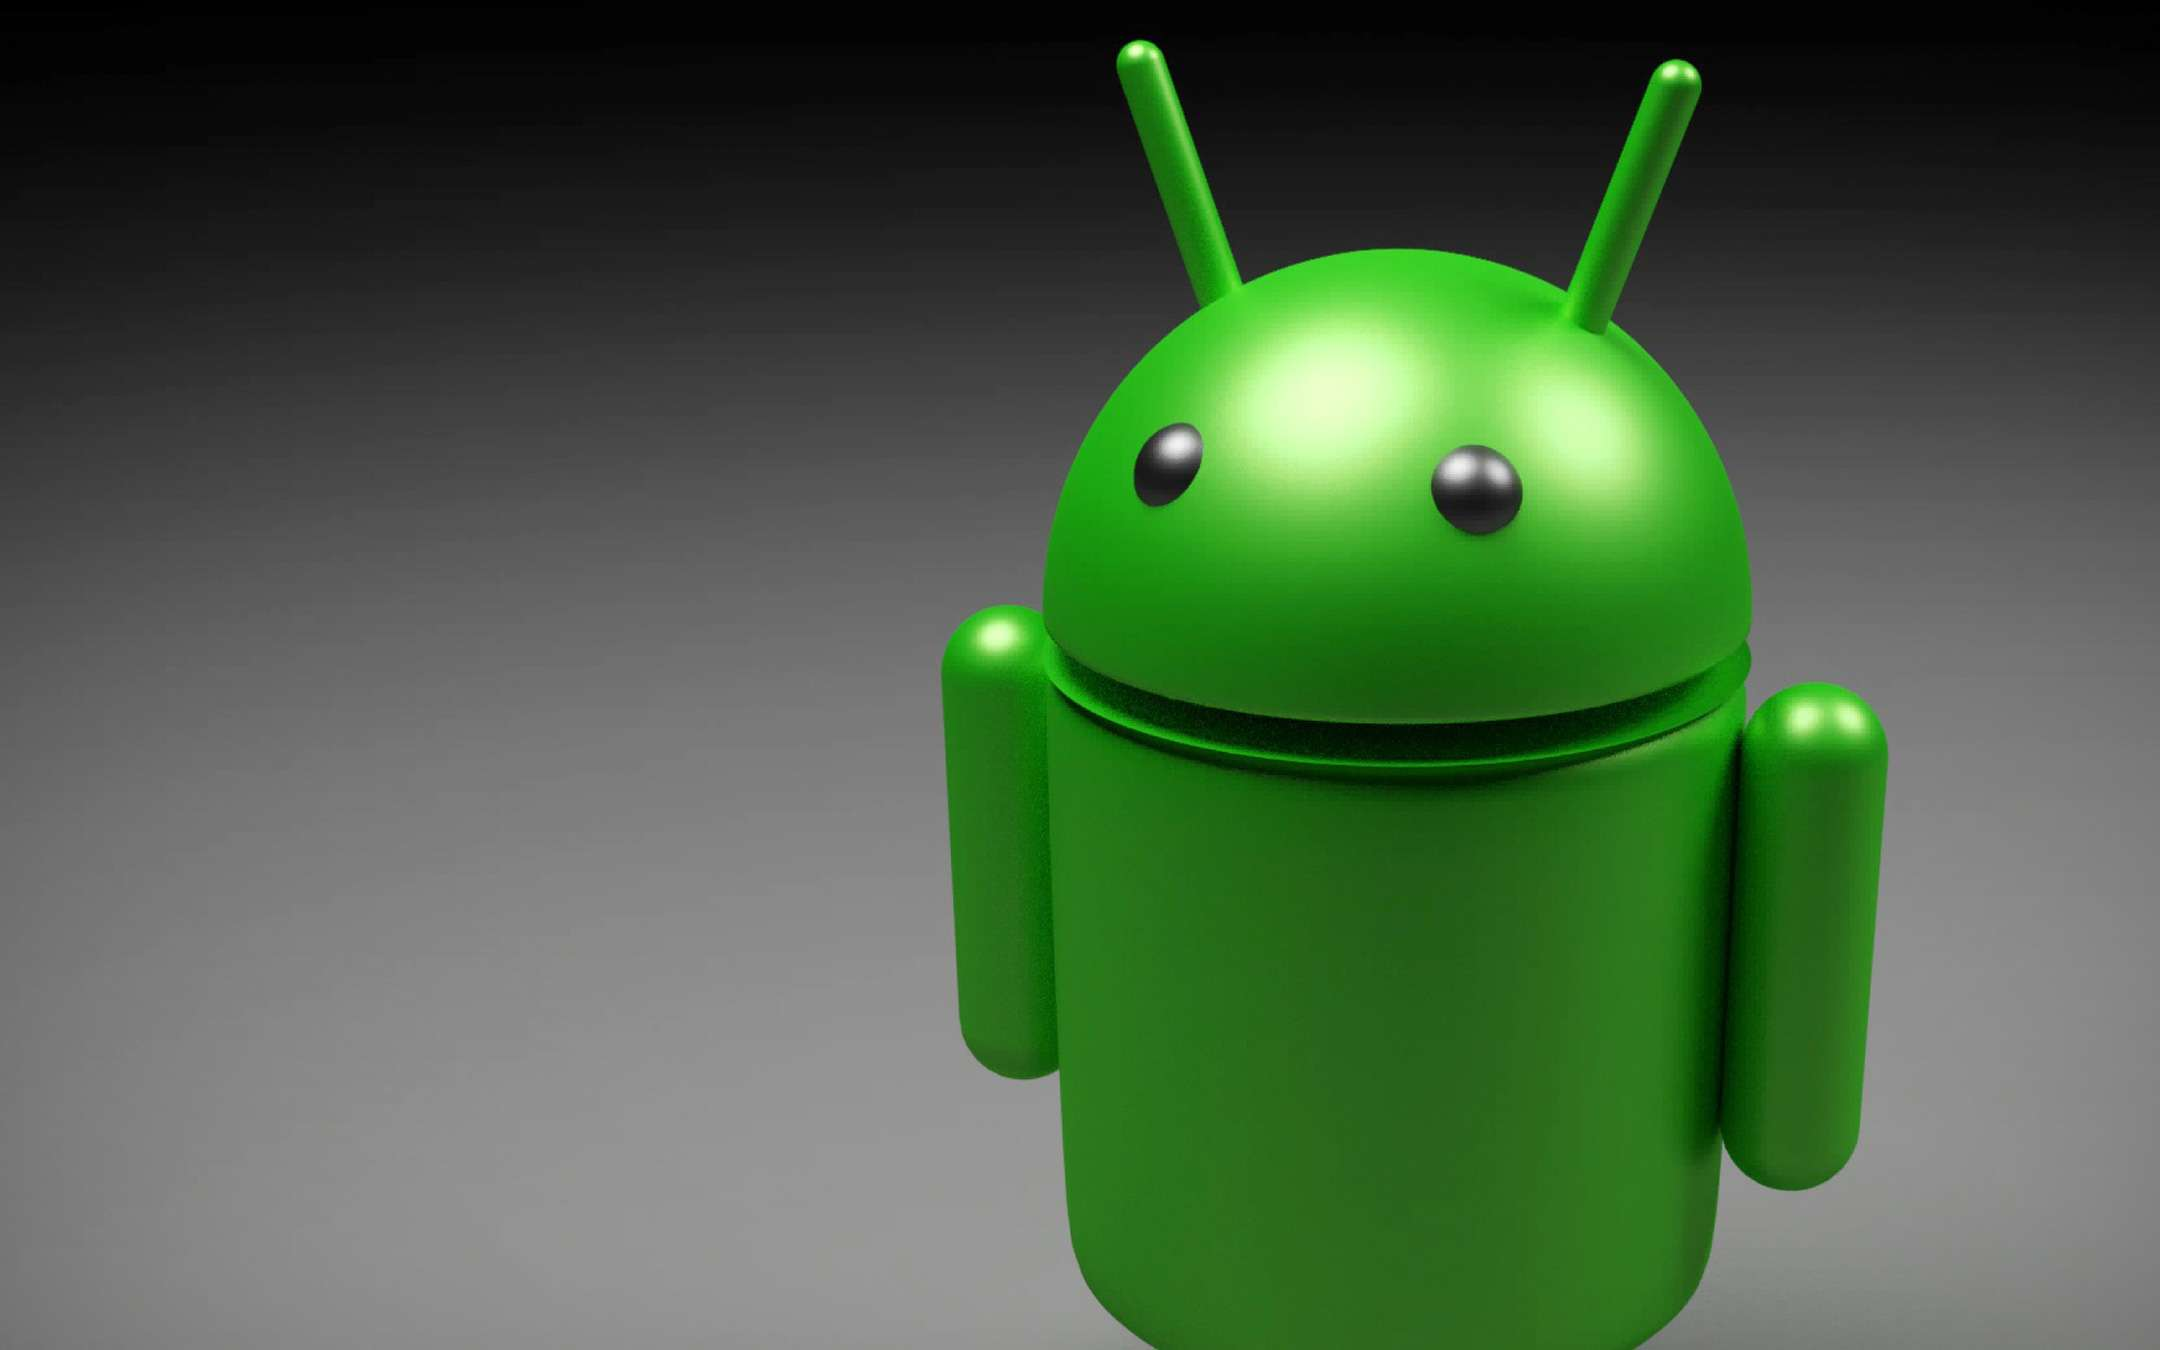 The Android ransomware that blocks the smartphone